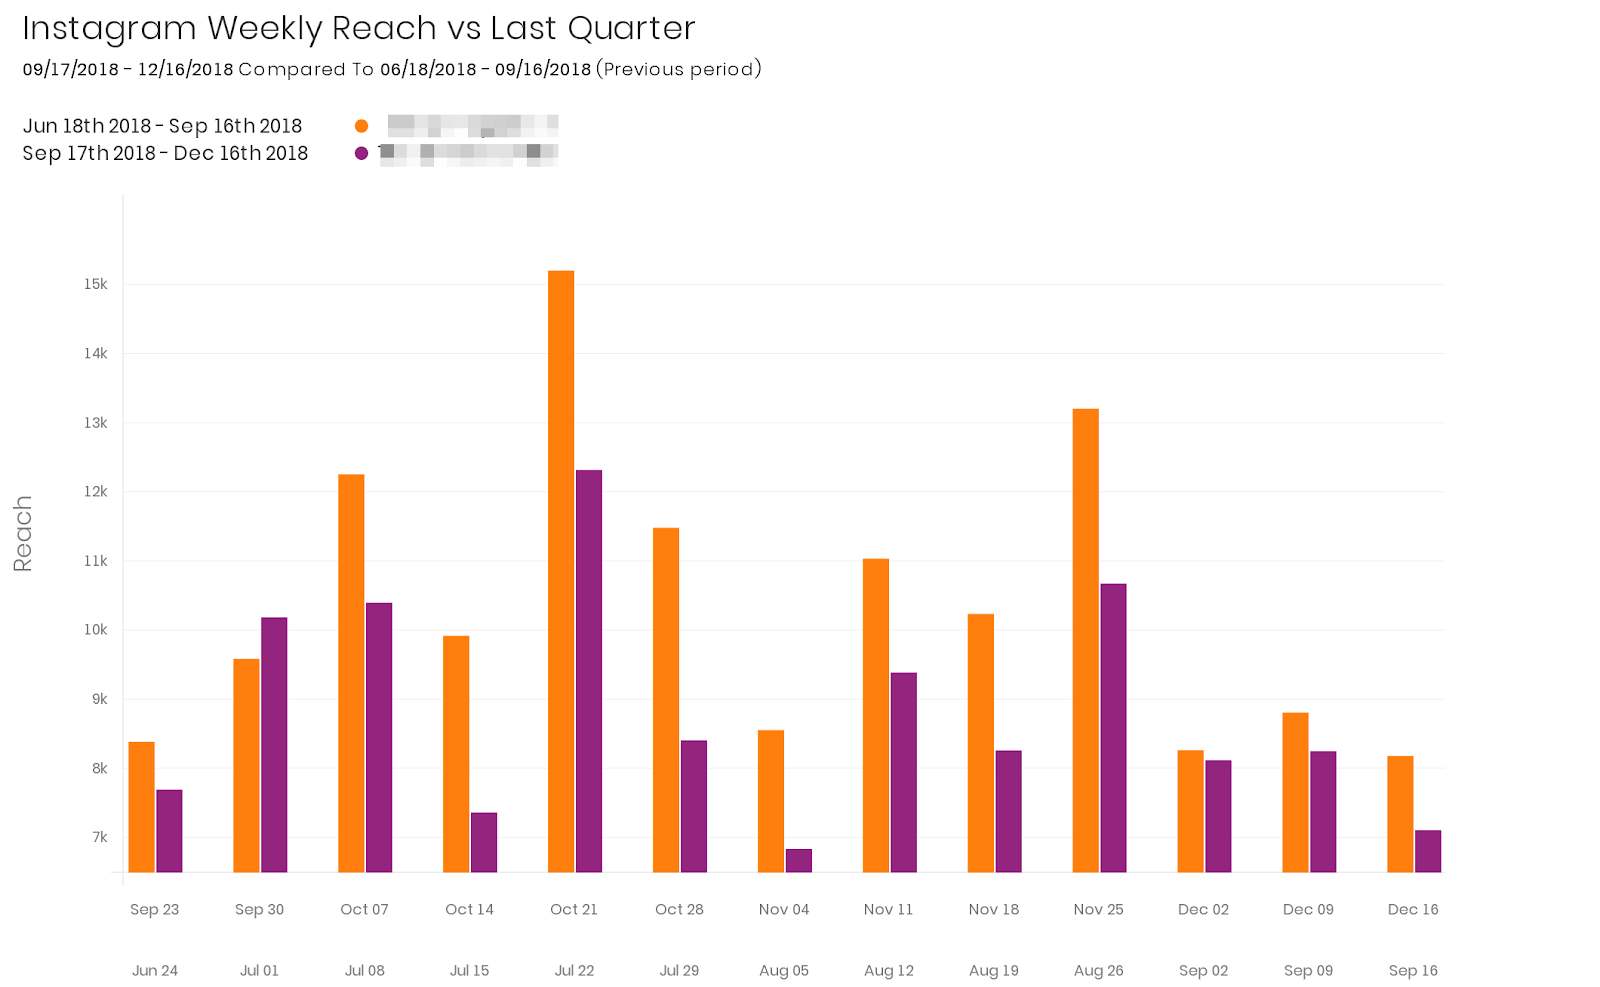 insta-reach-vs-last-quarter